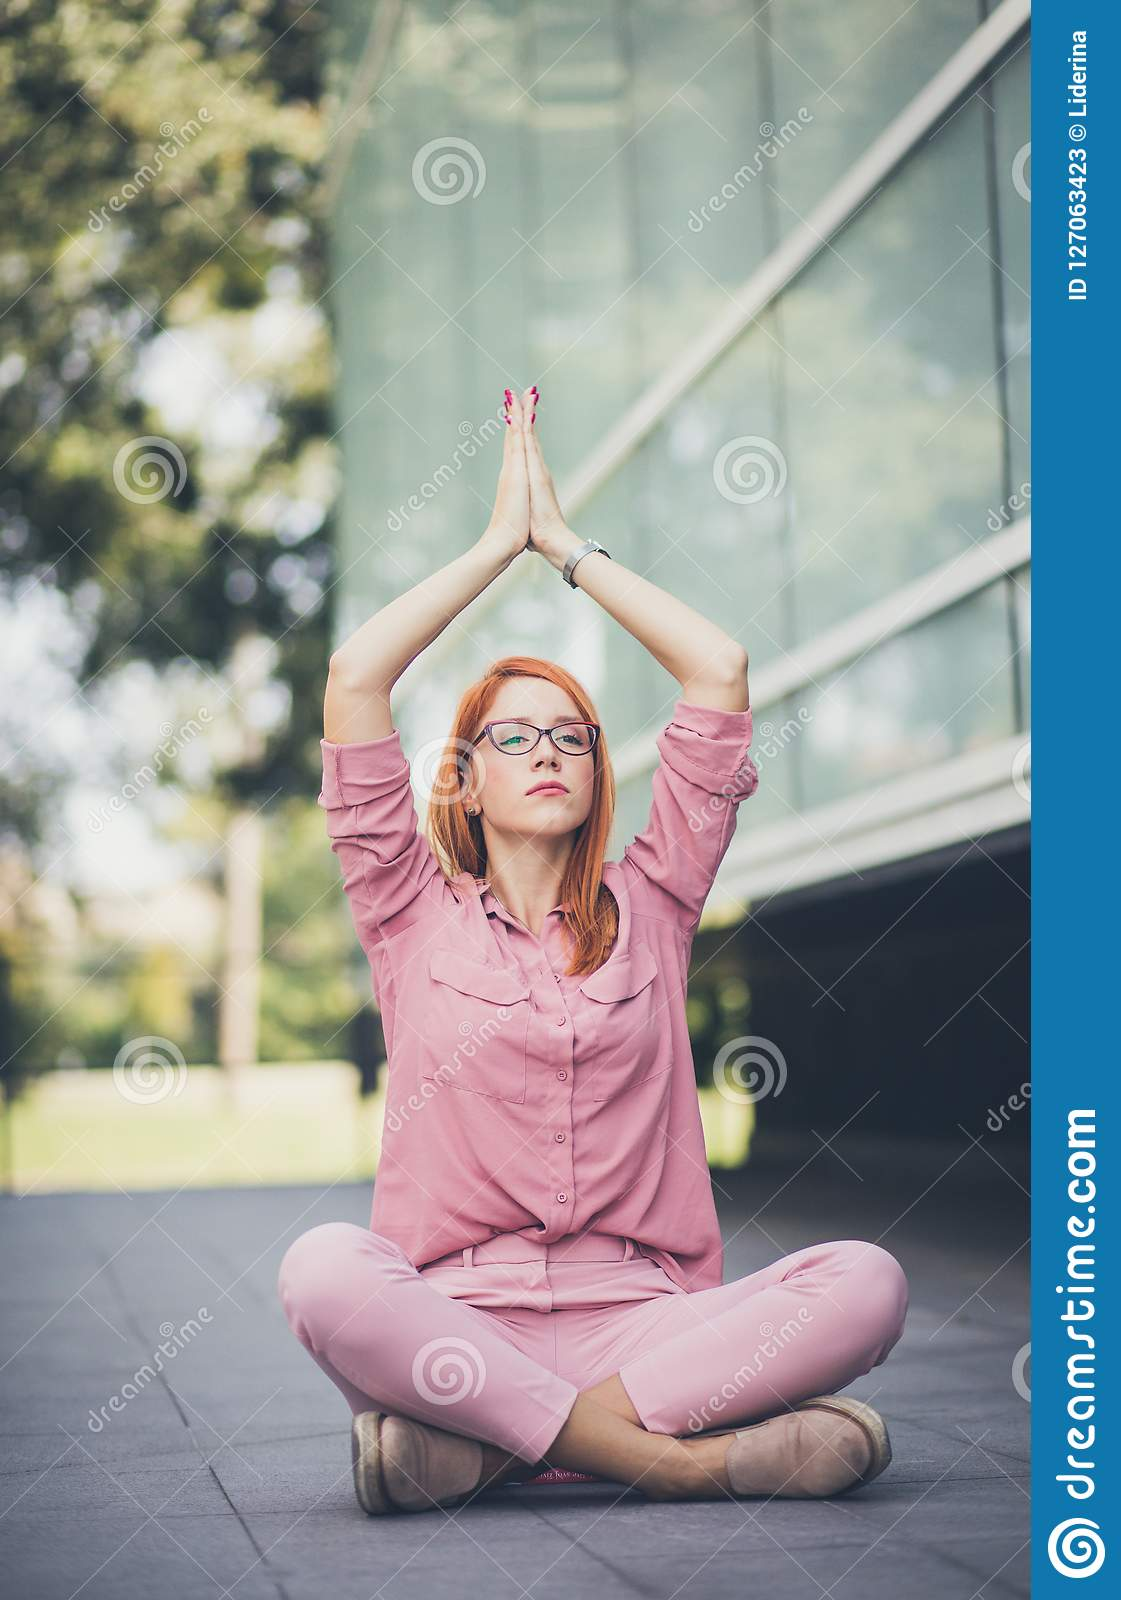 Meditation. Yoga lover. Business and pleasure.